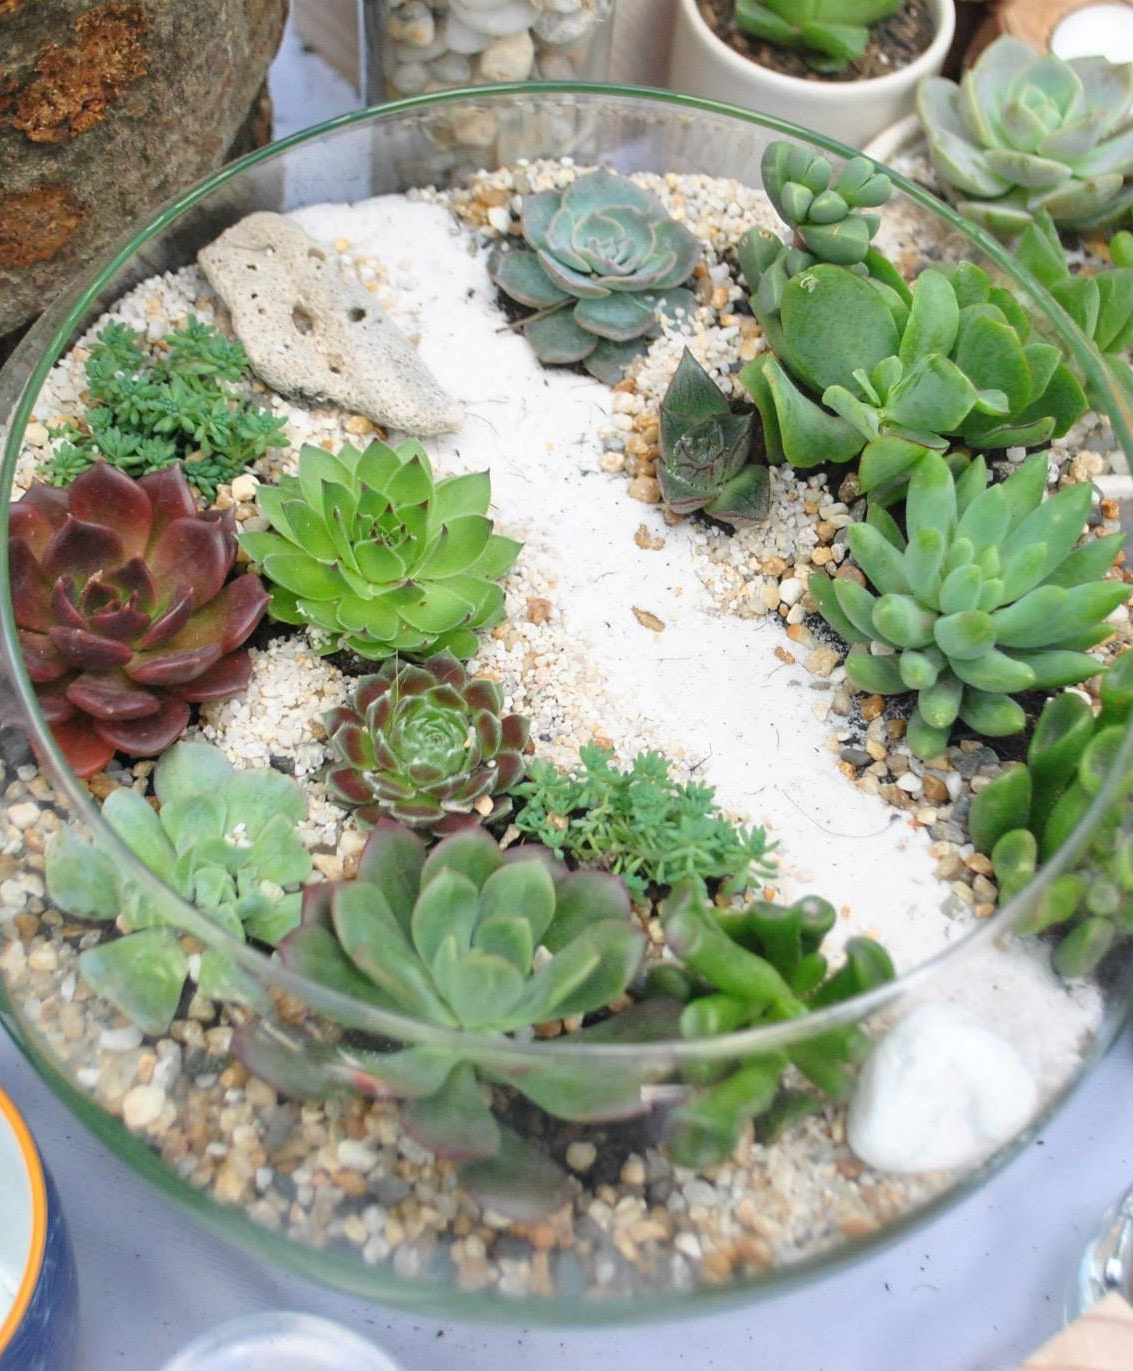 Fairy, Critter & Dinosaur Succulent Terrariums - In creating their own tiny magical world, students will gain more than basic understanding of plants and plant-care.